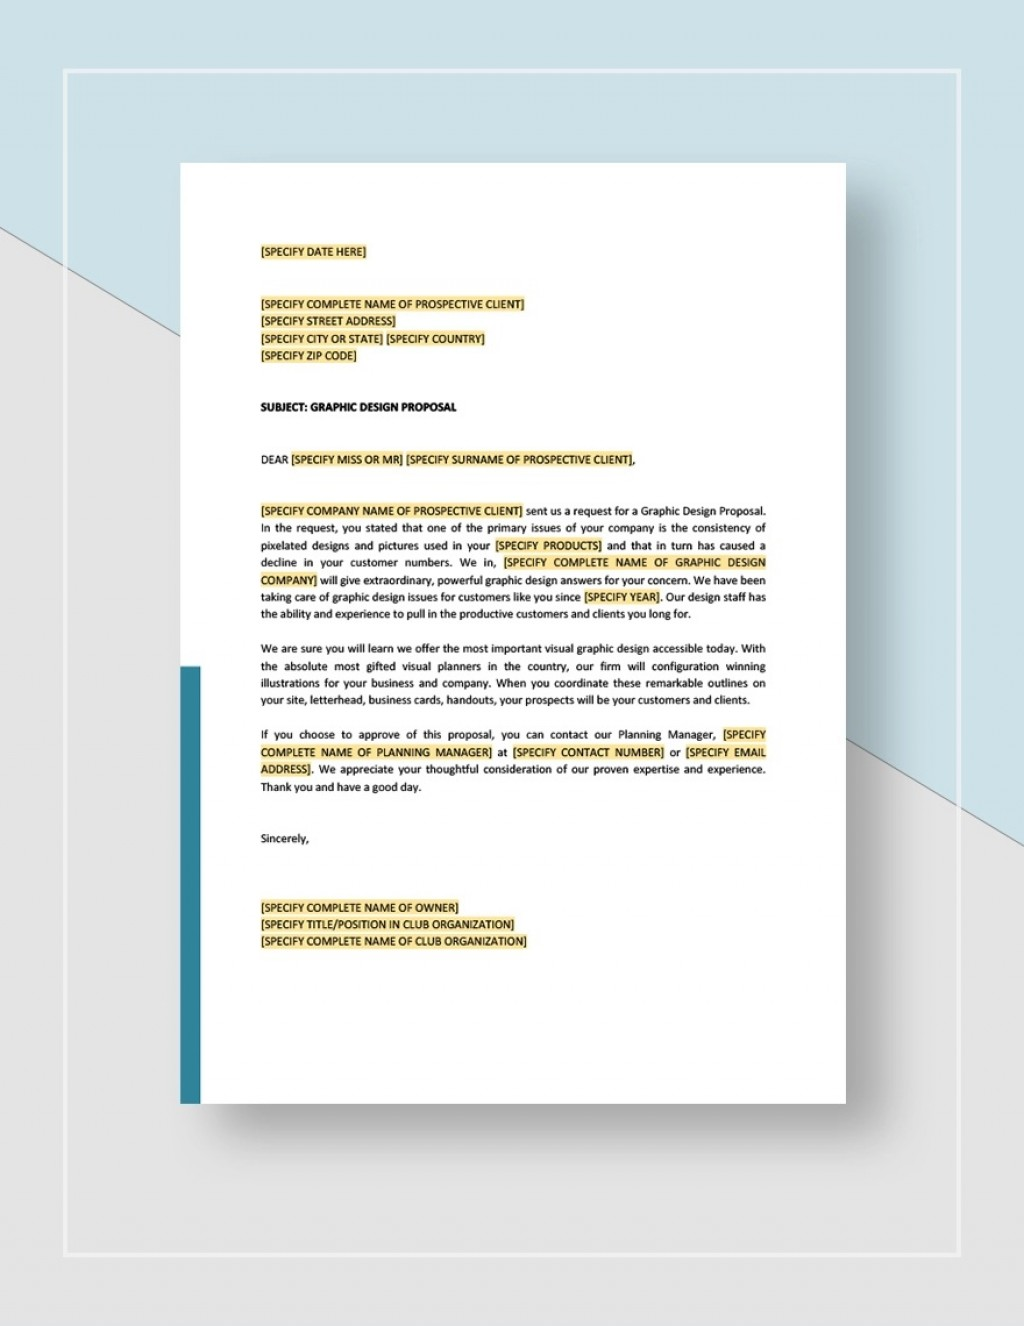 Graphic Design Proposal Template Sample Idea Jpg  Free Download IndesignLarge